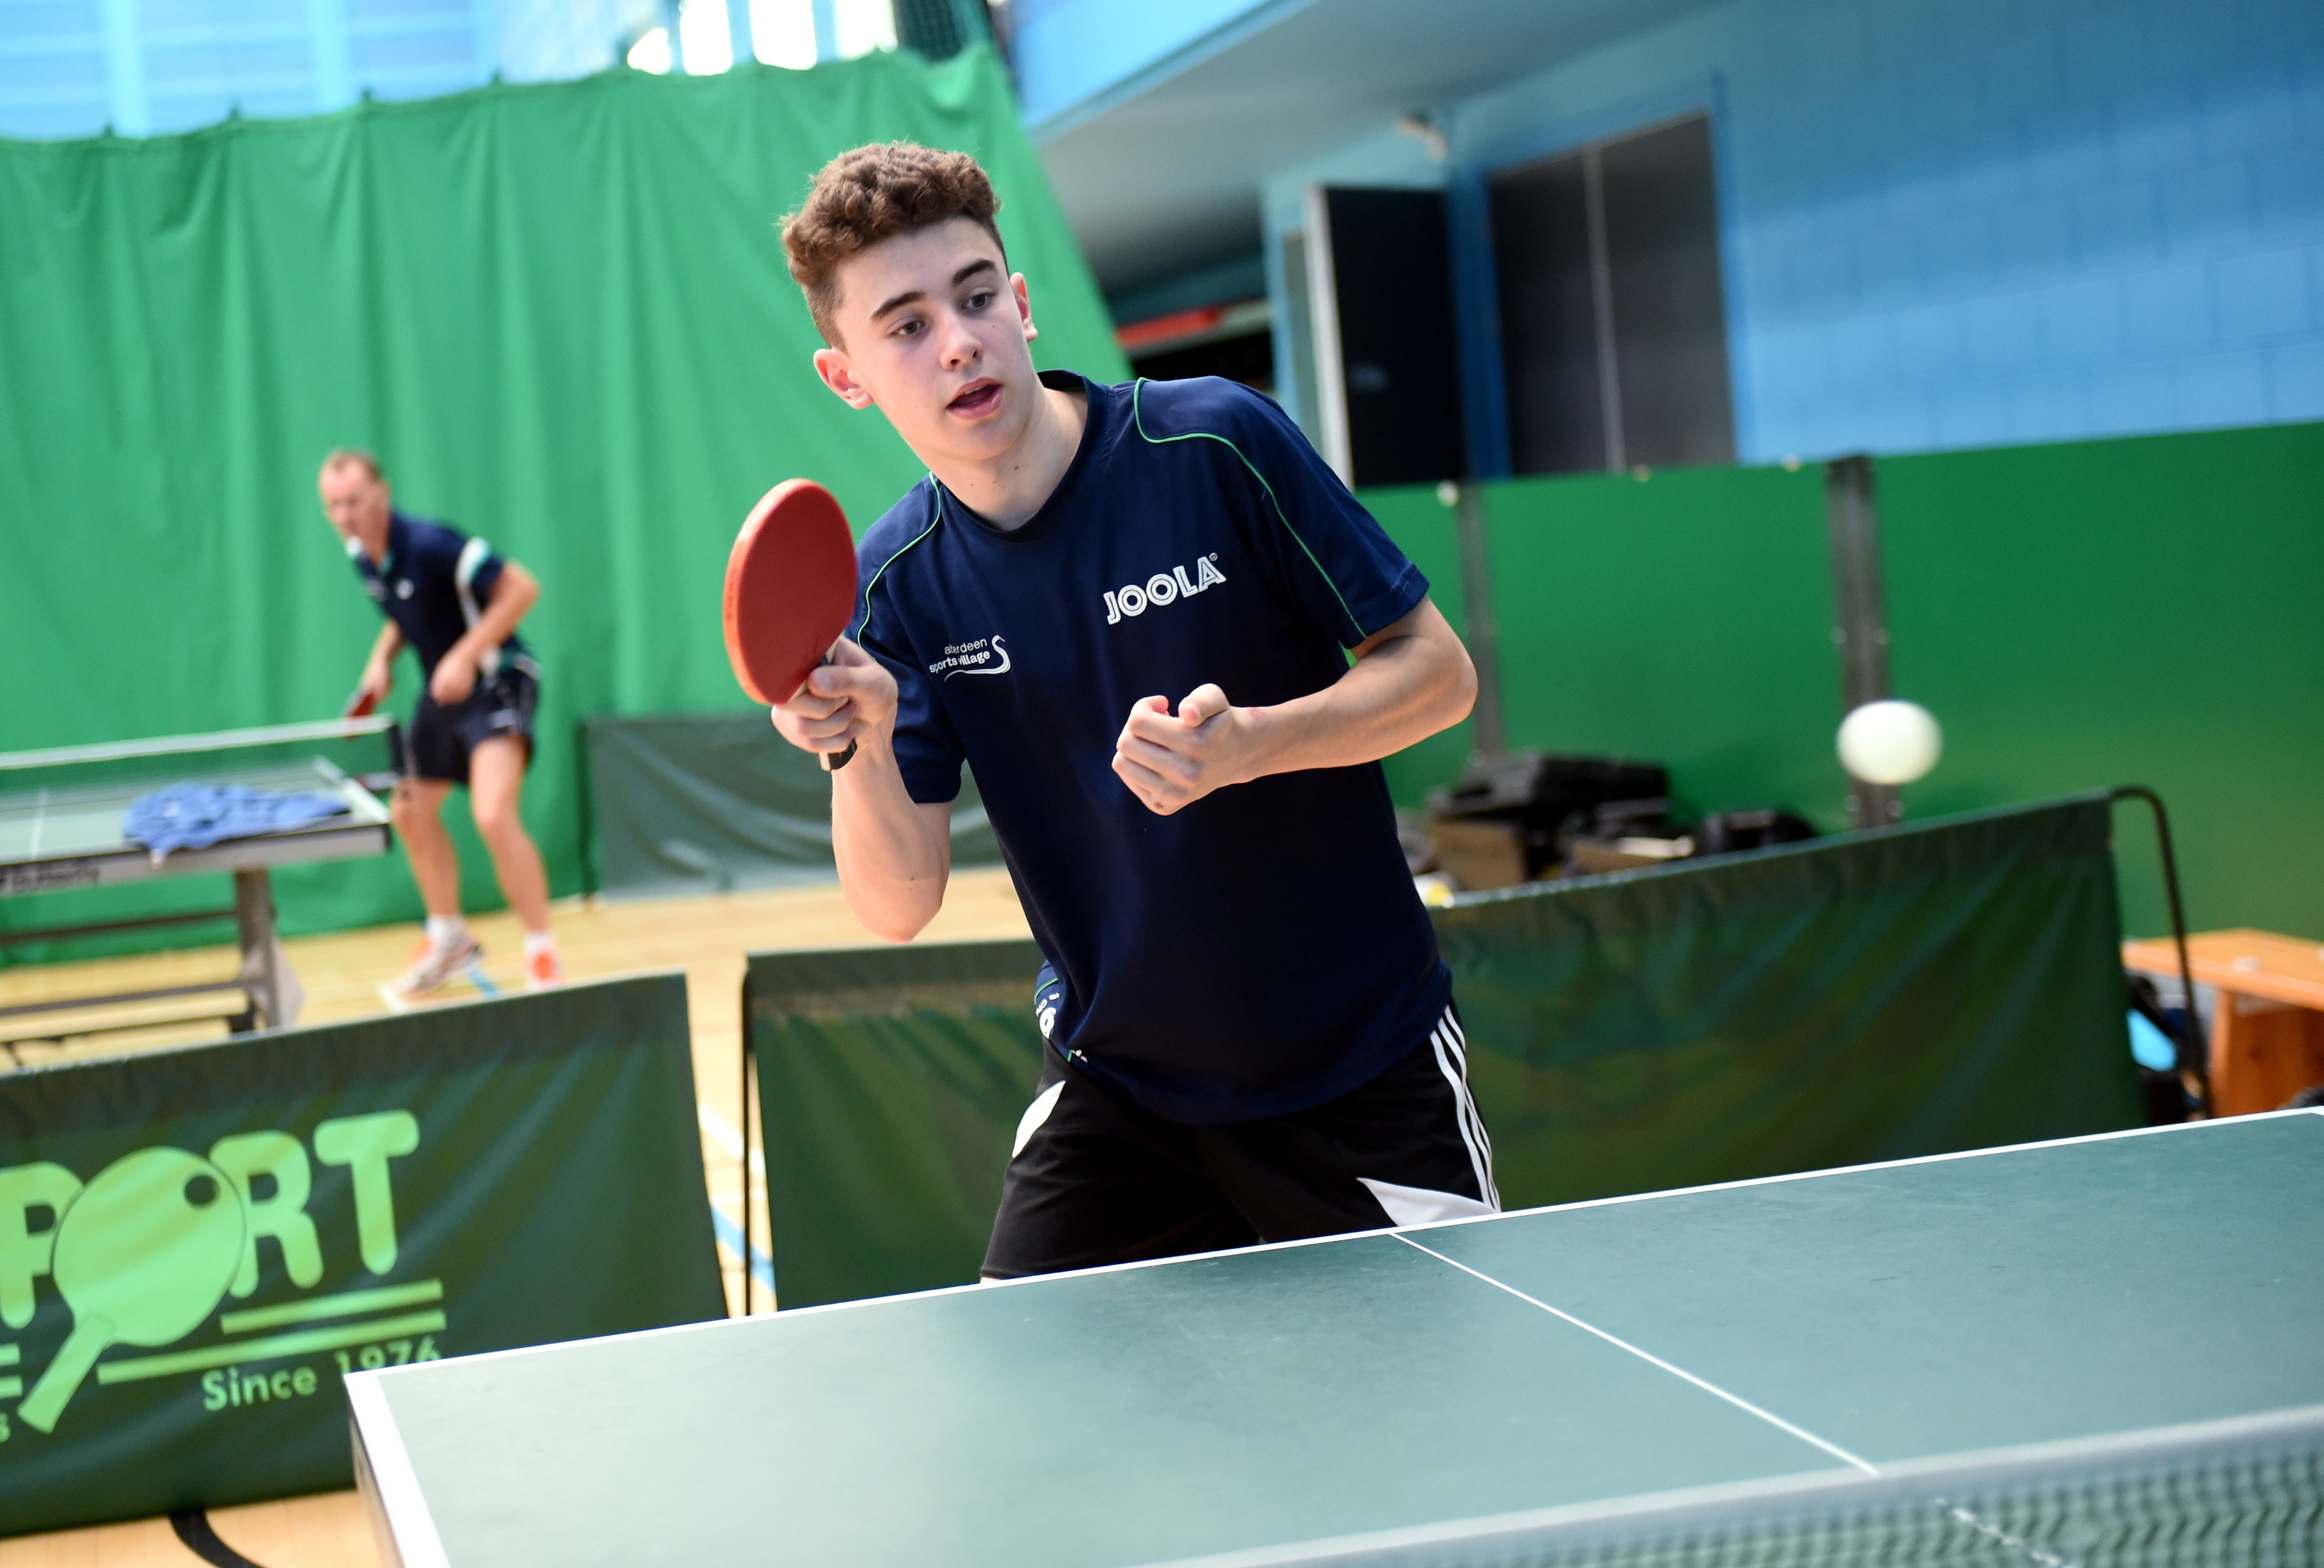 Murray Gauld, who plays at the table tennis club.